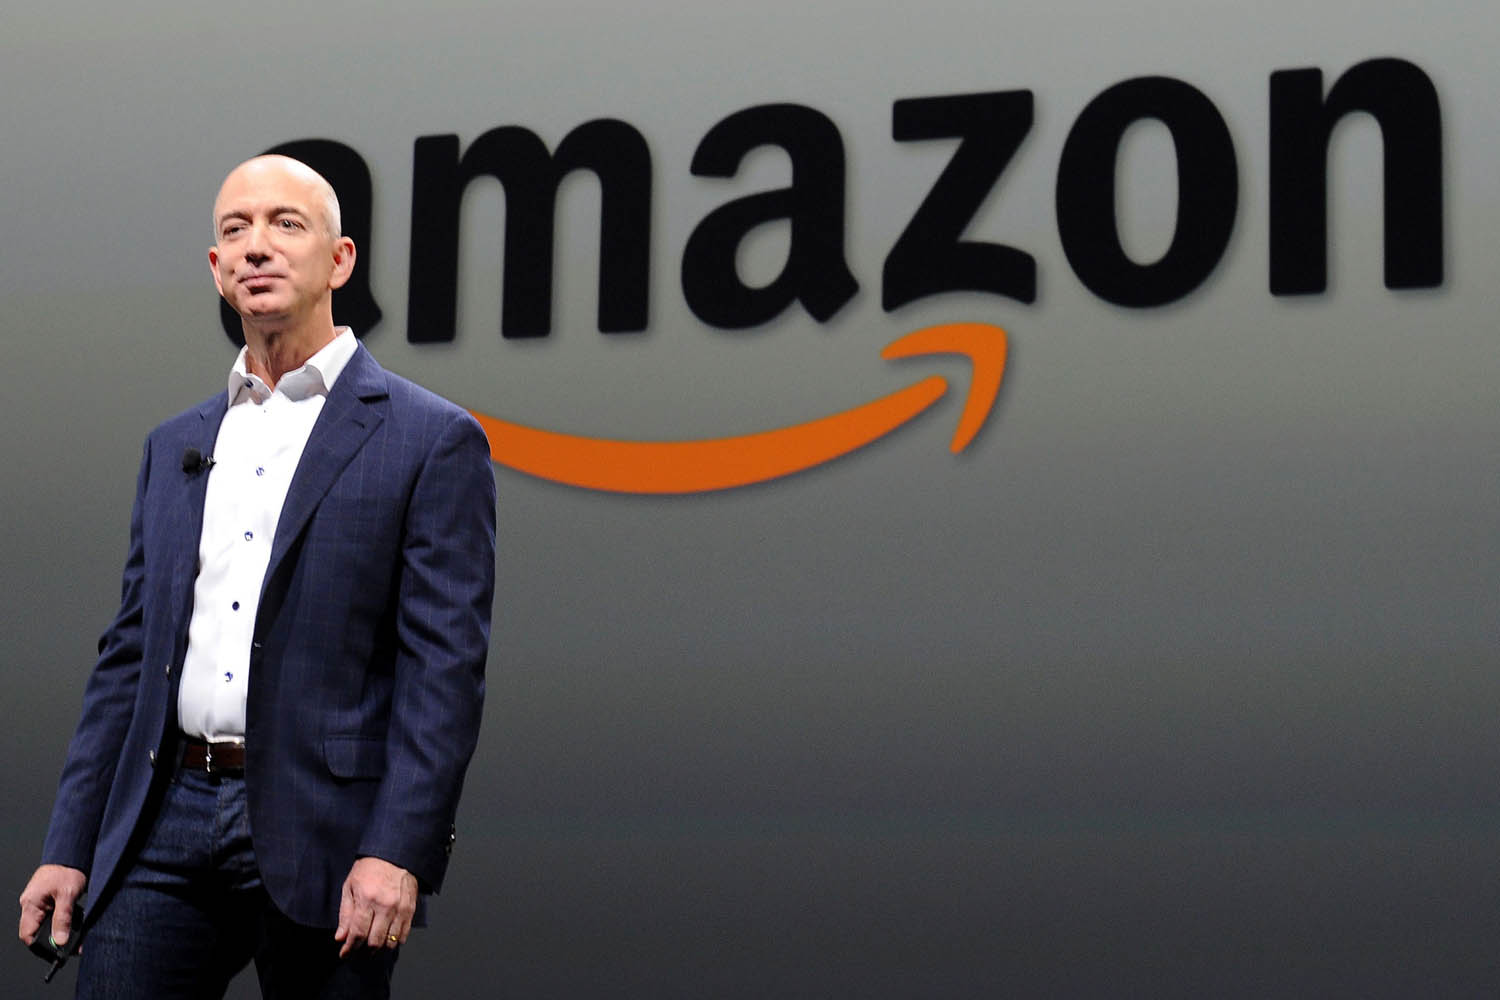 Amazon adquiere el dominio .buy por 4,6 millones